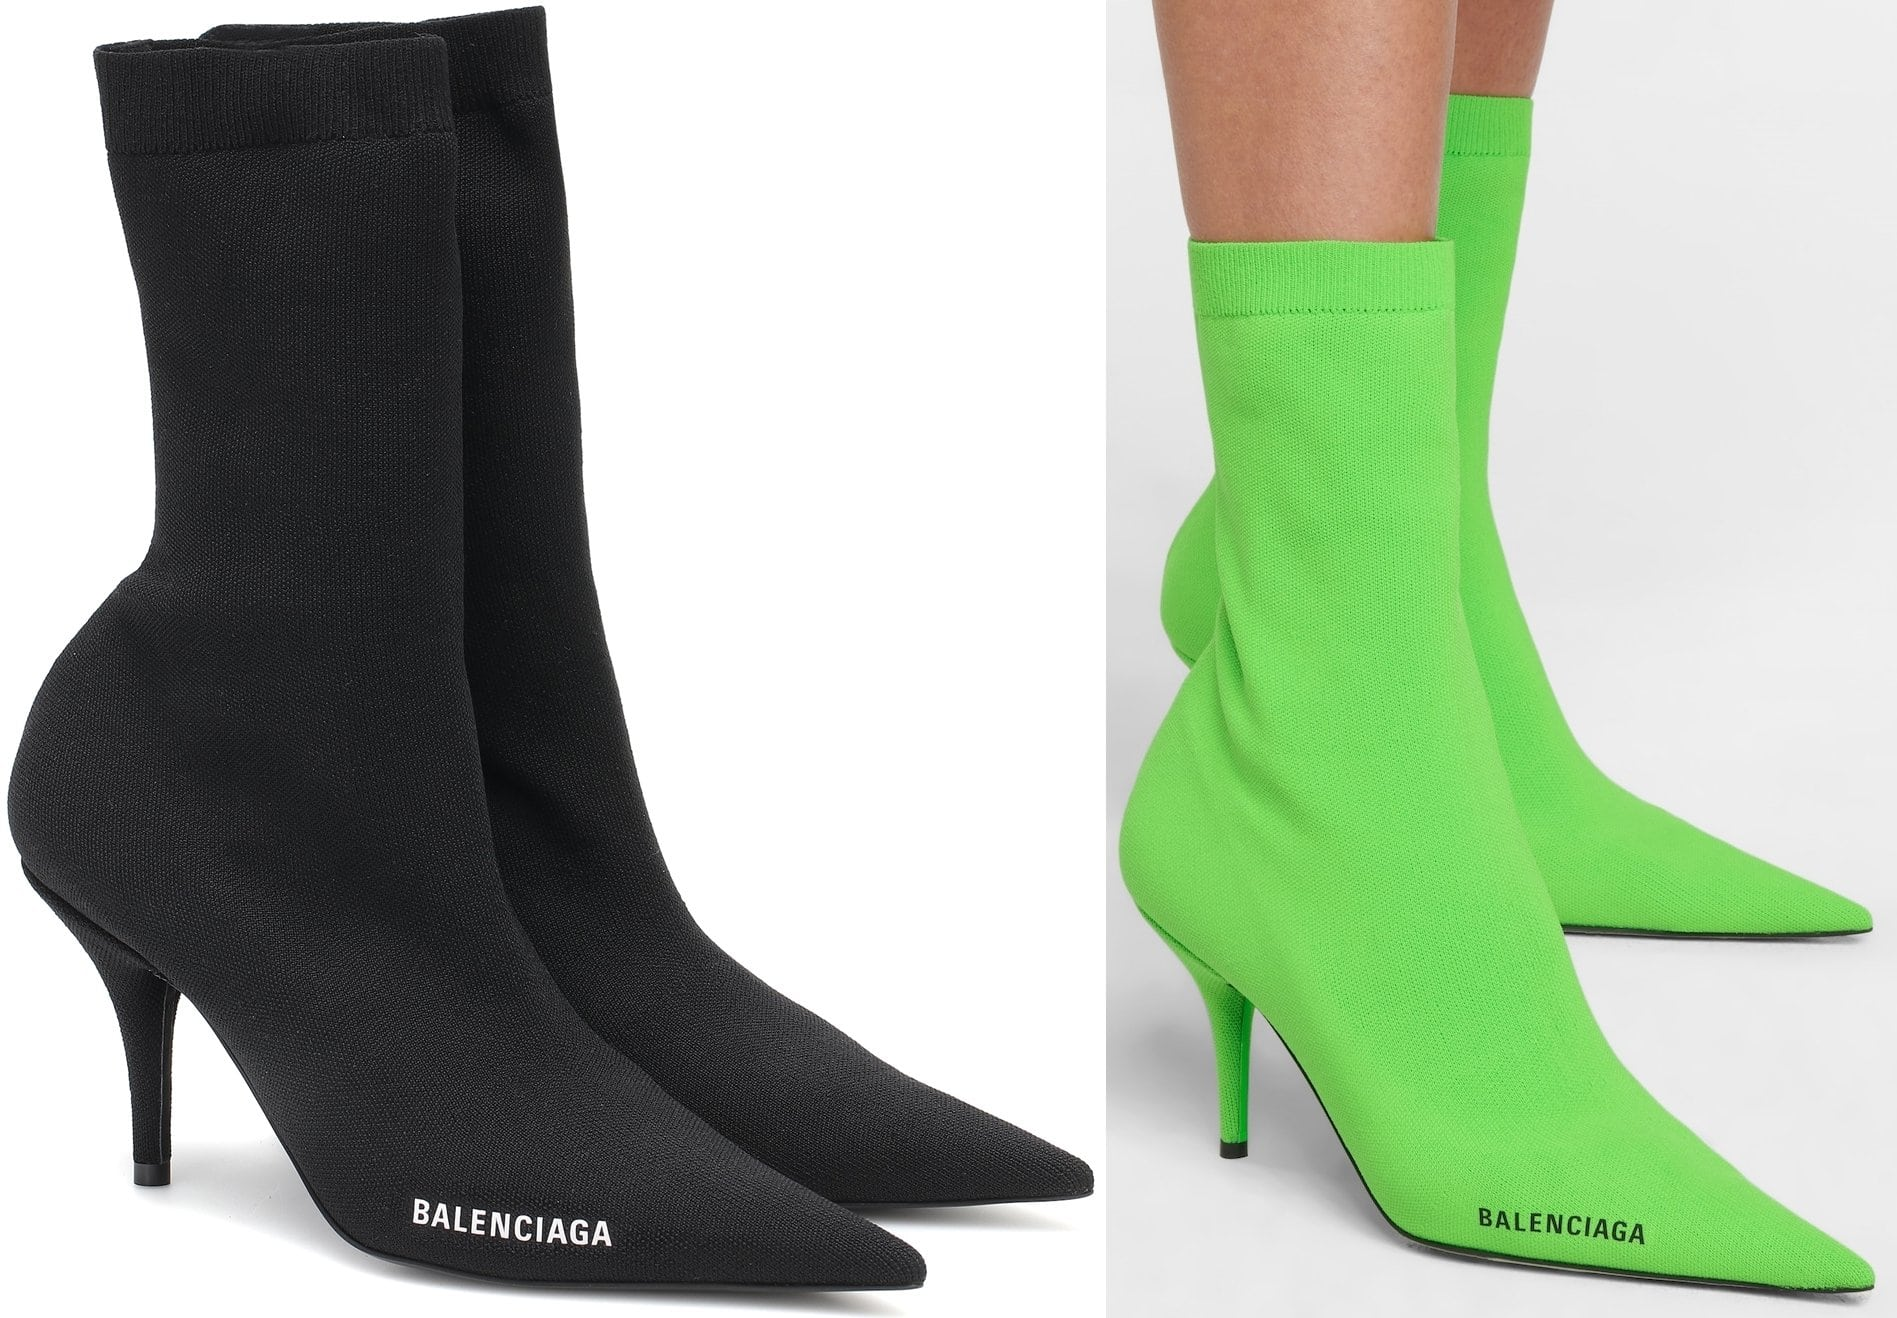 A fashion favorite since 2017, Balenciaga's Knife boots continue to fascinate with their exaggerated point toes and razor-sharp profile